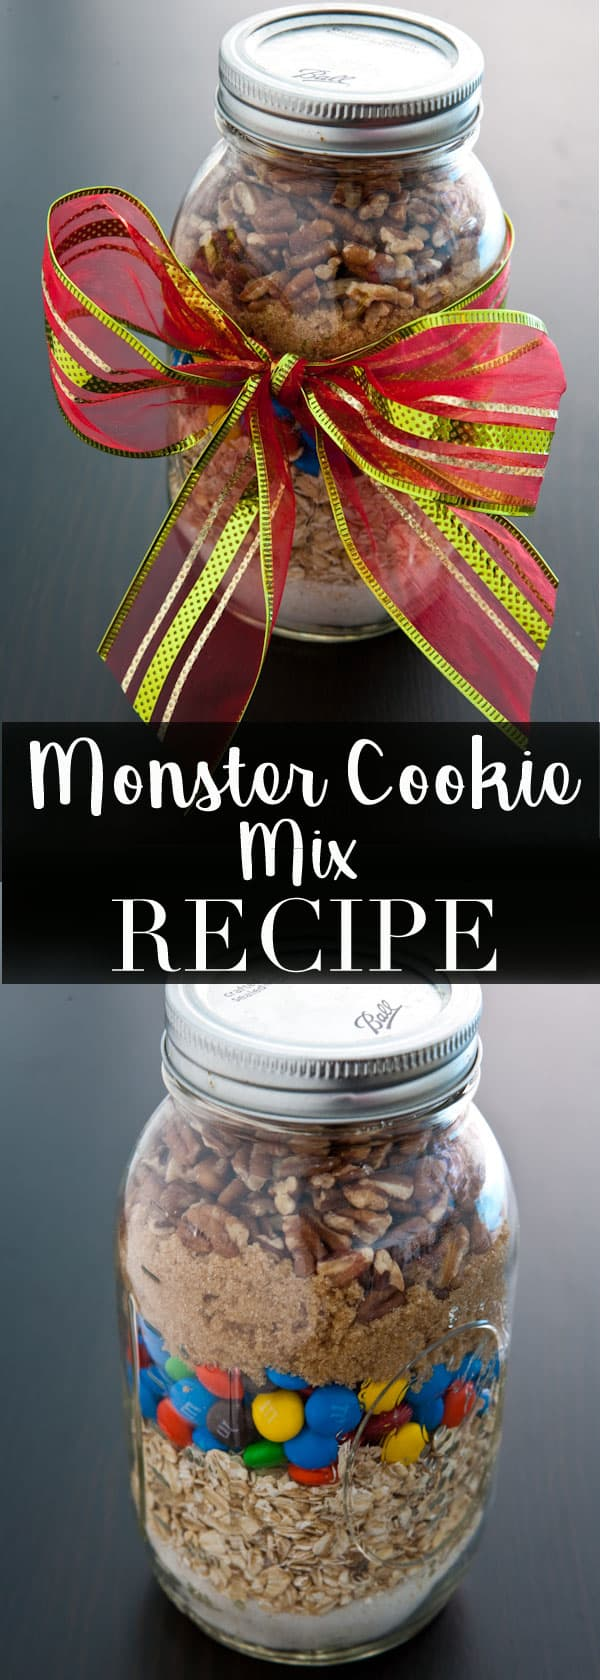 cookie mix banner